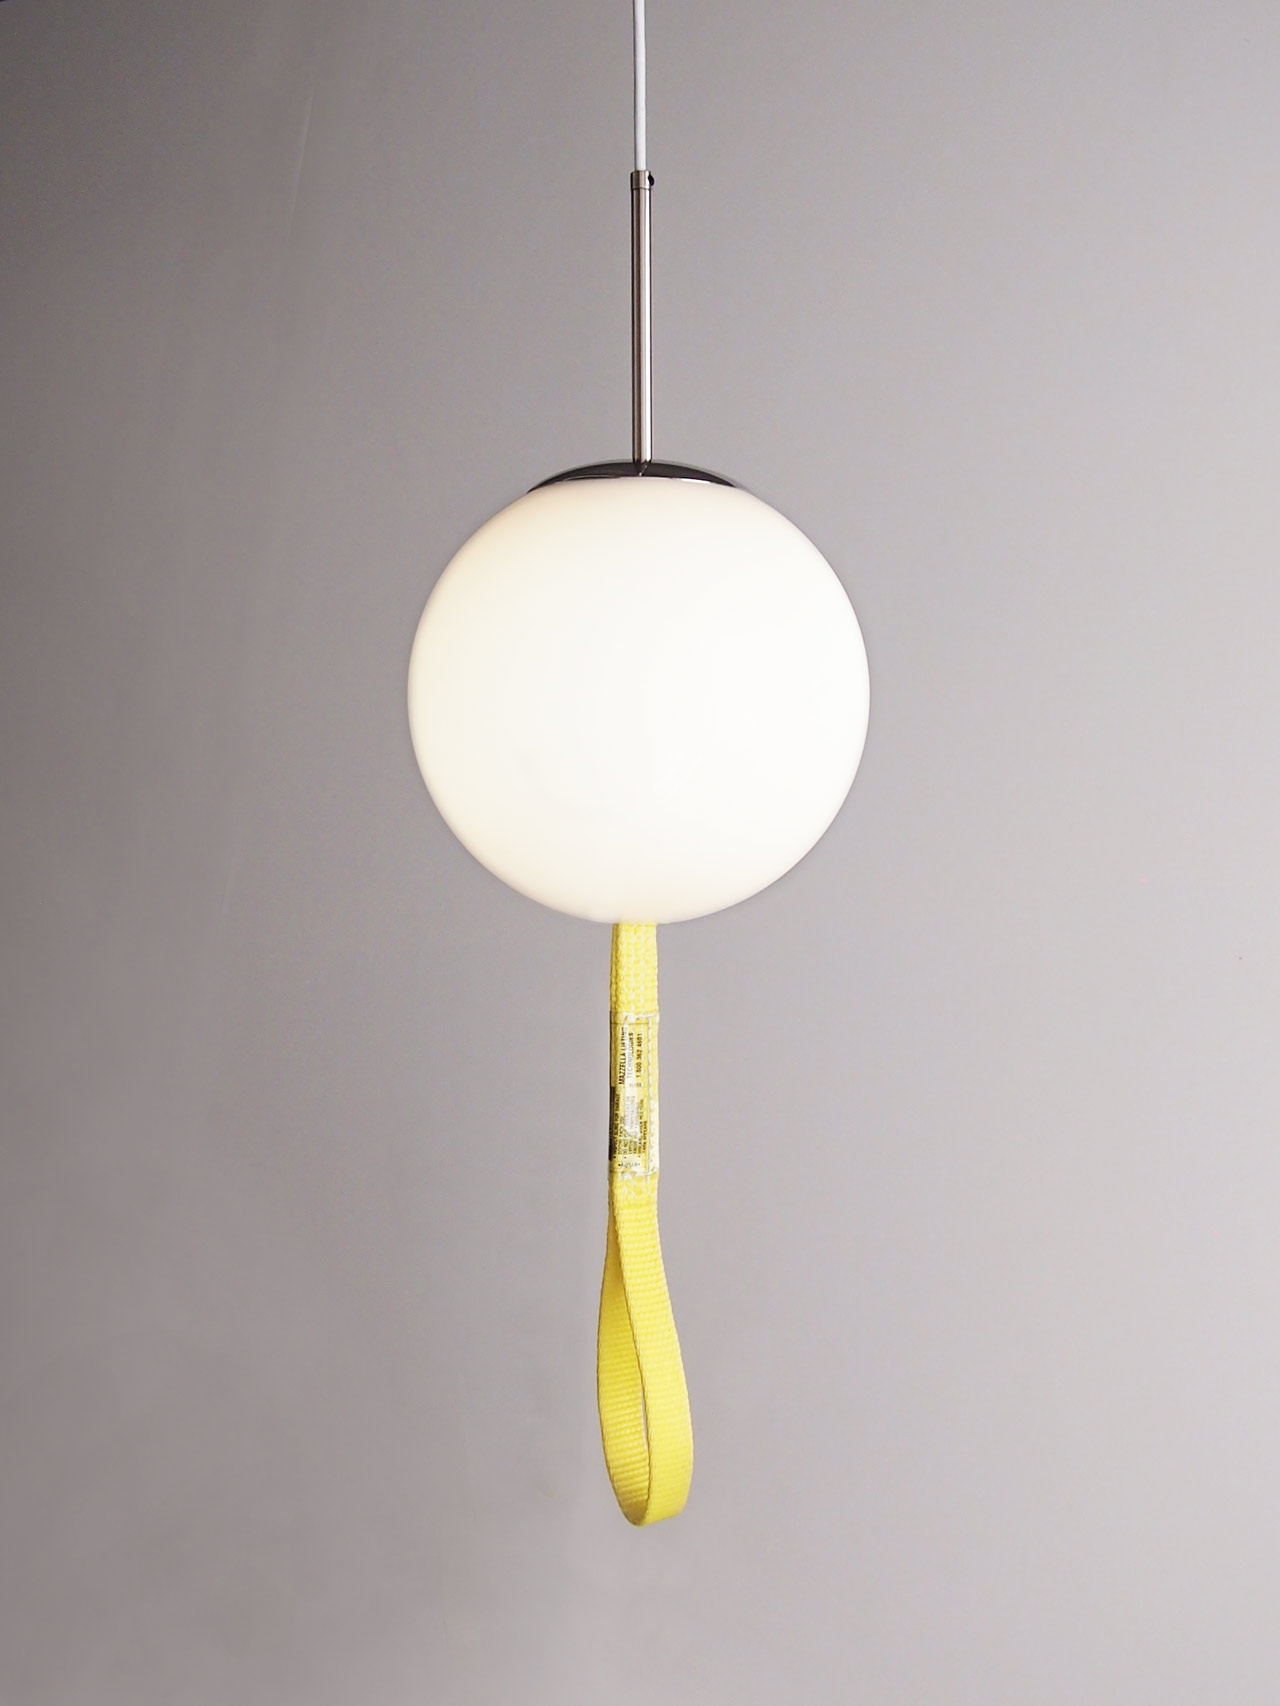 DIY globe pendant light designed by Aandersson